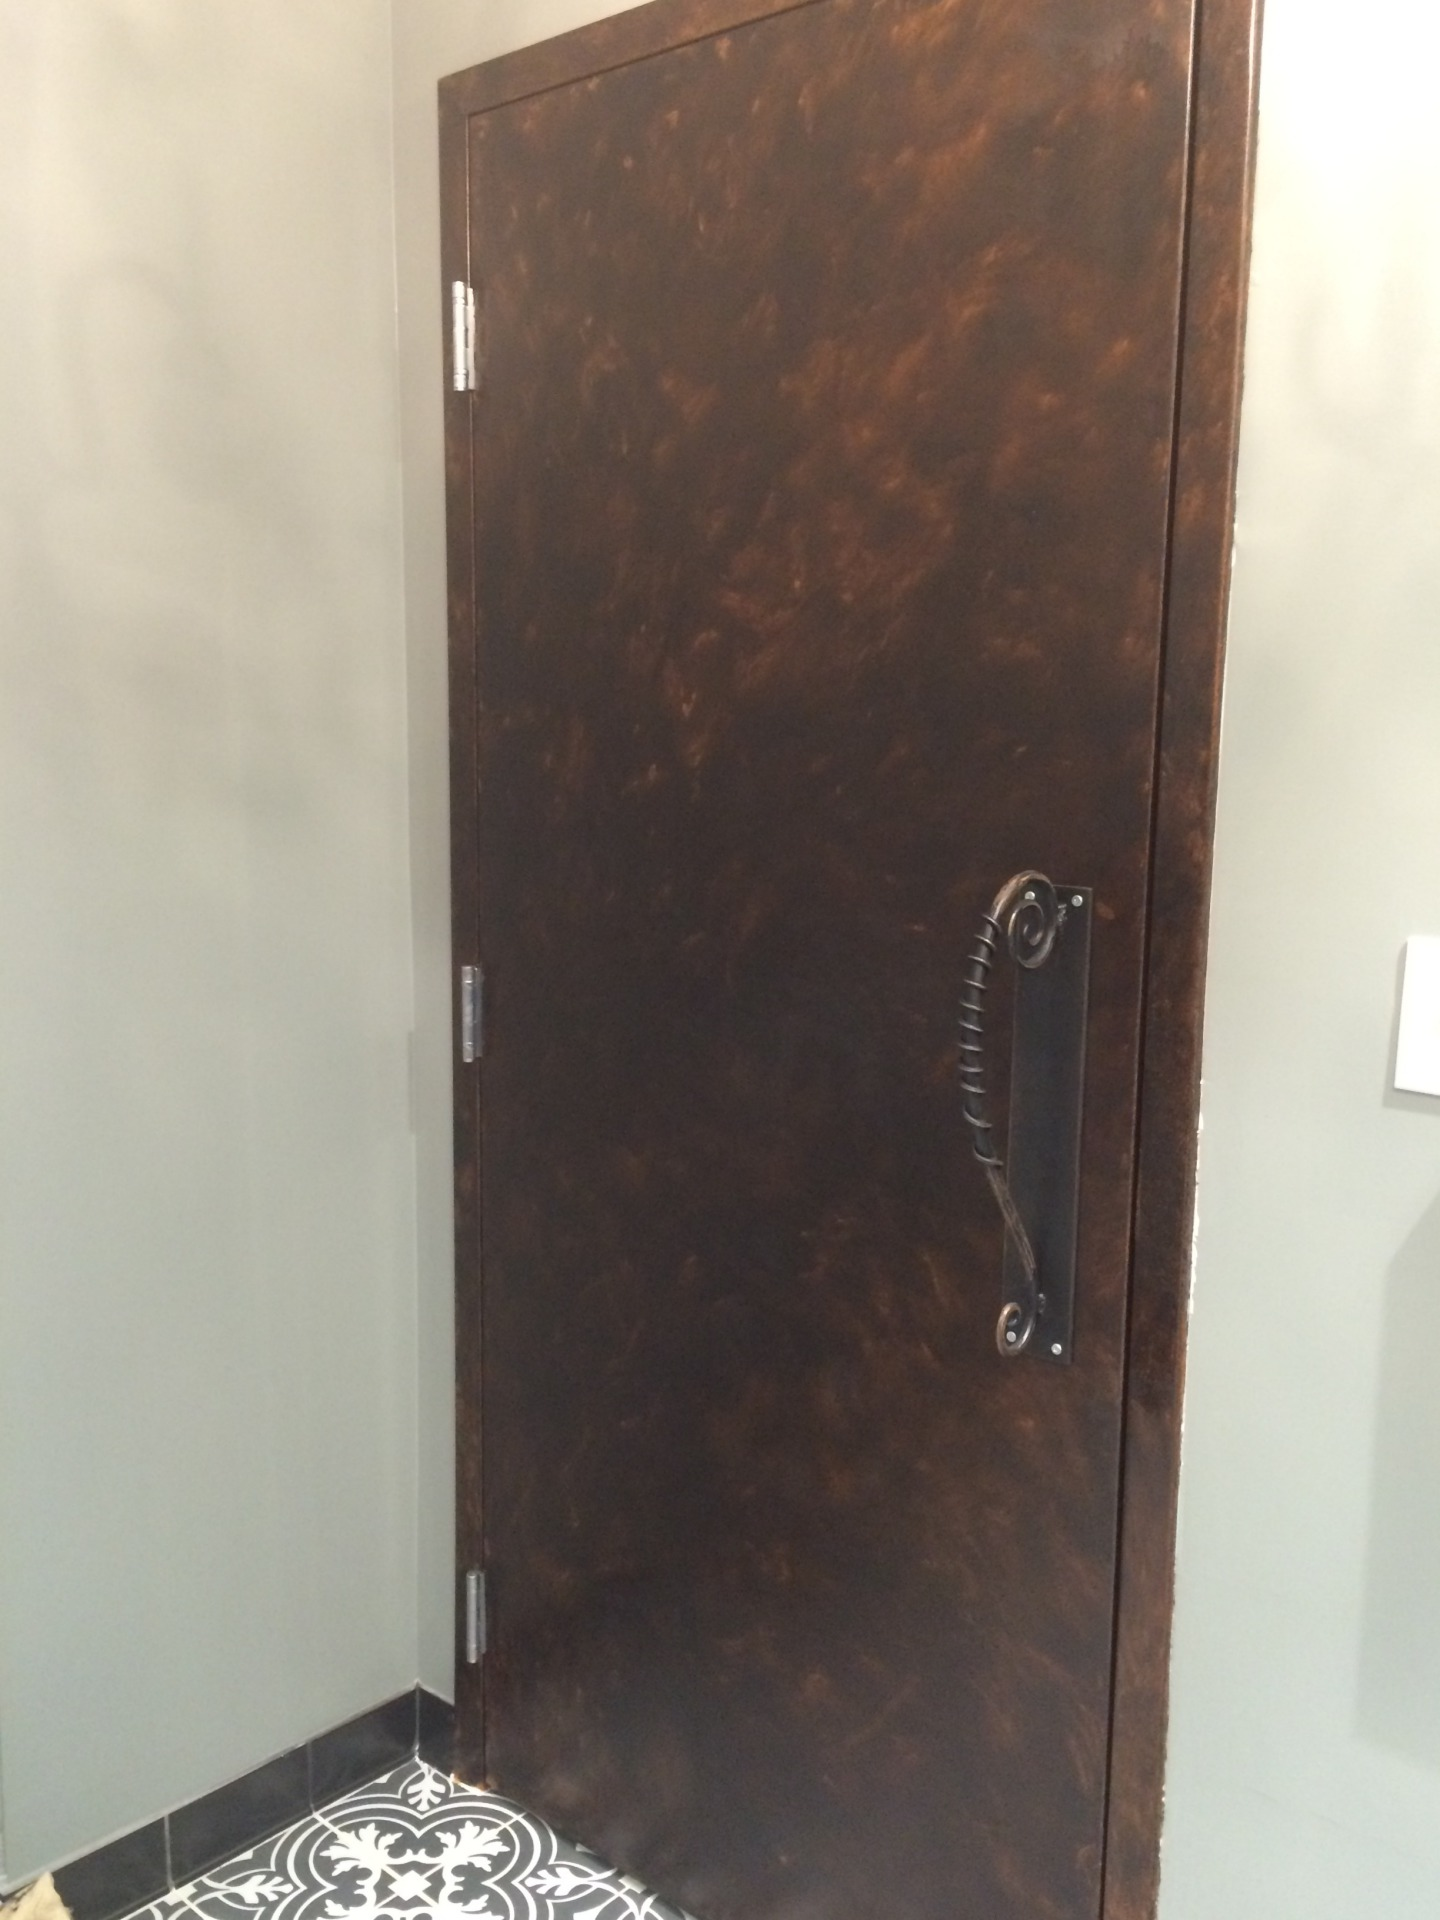 copper glaze metal bathroom door, industrial, warehouse, downtown raleigh, vita vite, fabulous finishes by michelle